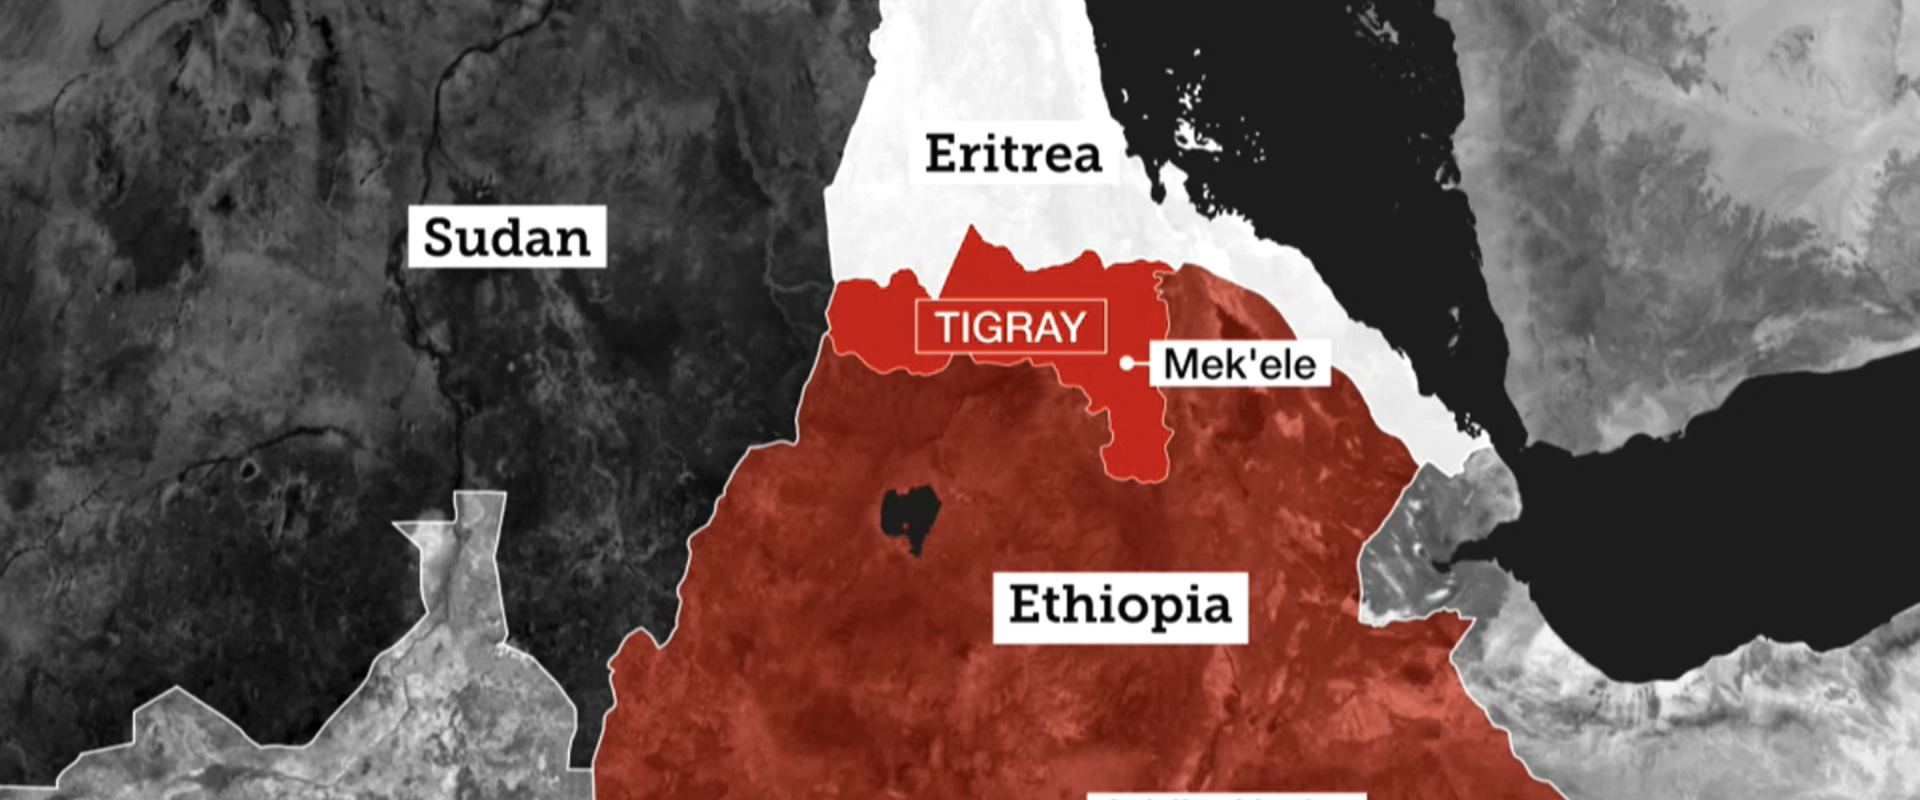 The geopolitics of Ethiopia-Tigray conflict